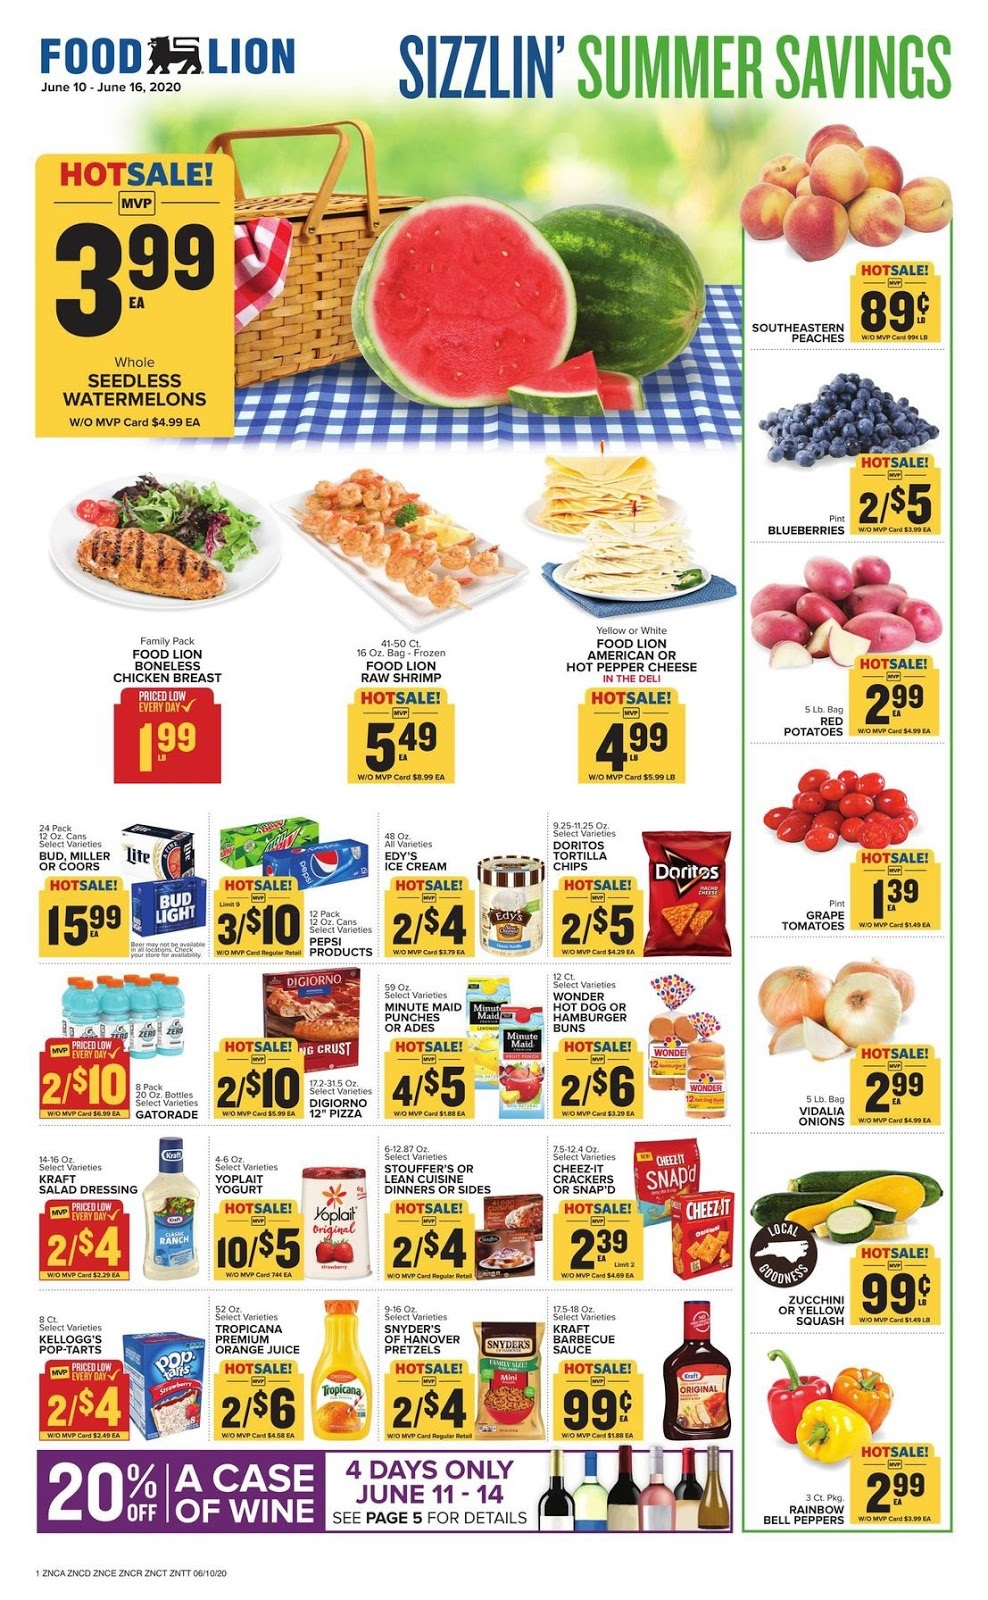 Food Lion Ad 6/17/20 - Food Lion Weekly Ad June 17 2020